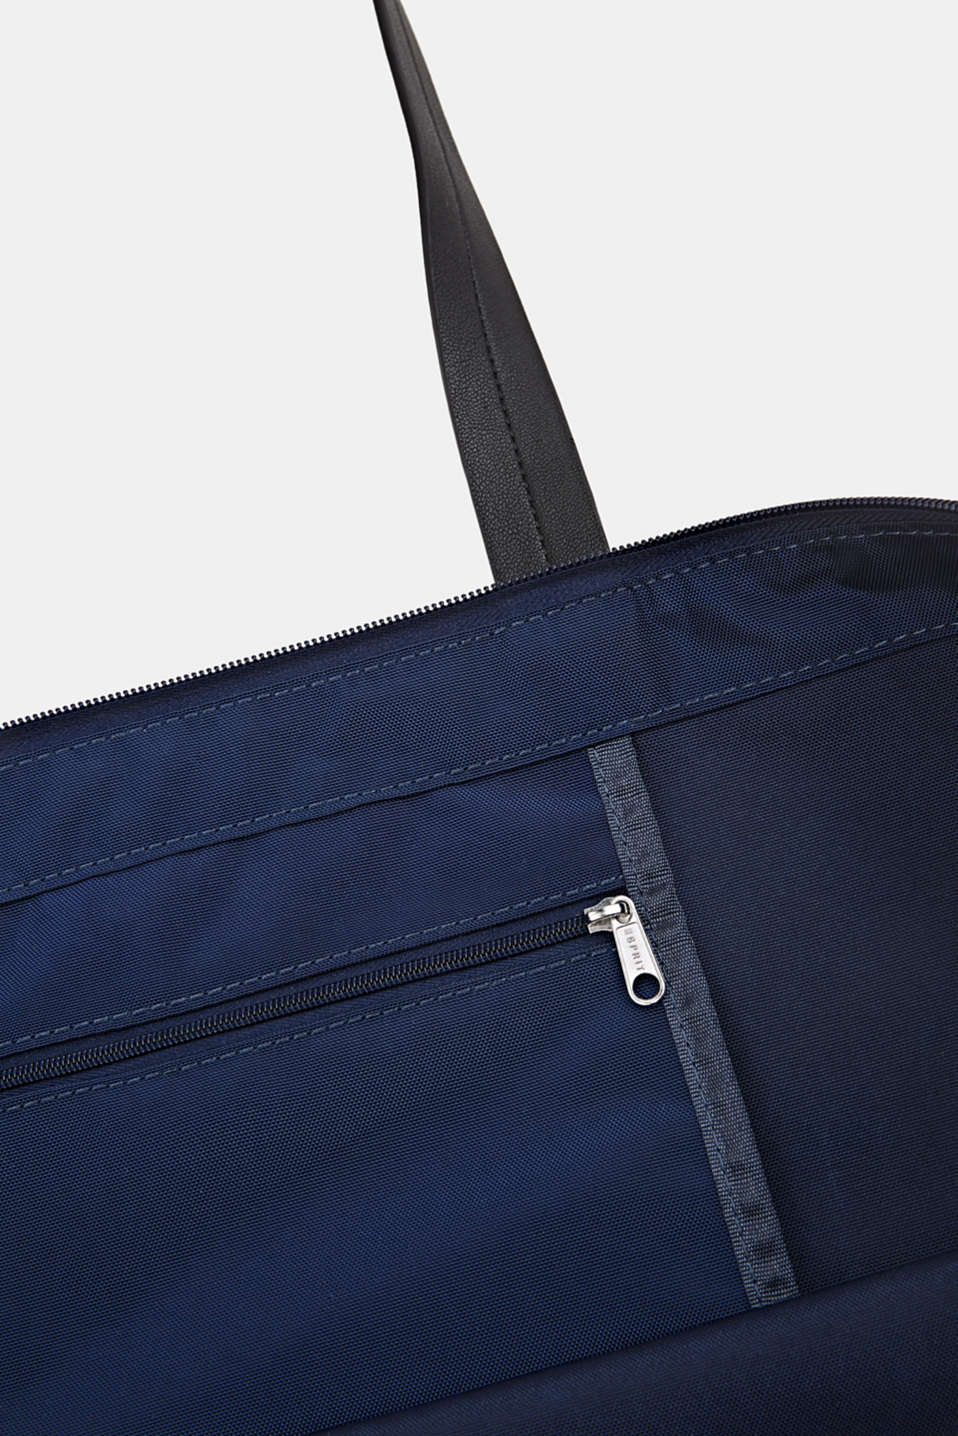 Nylon tote bag, NAVY, detail image number 4